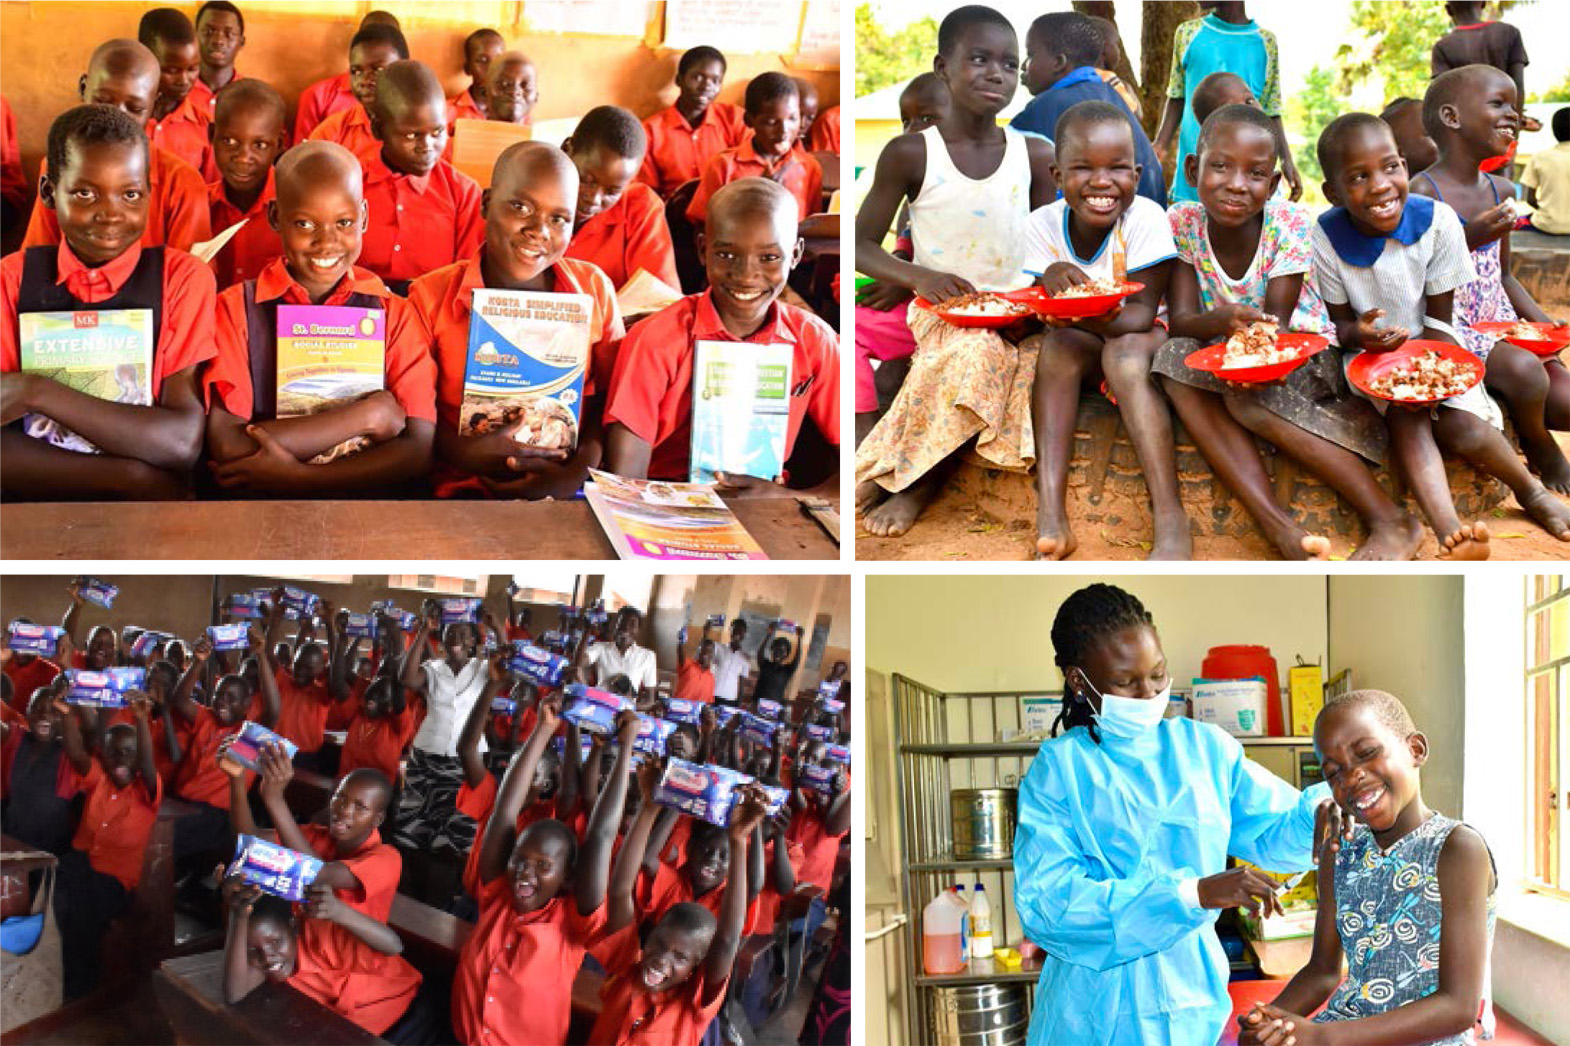 The fortunate 100 girls with sponsorship and scholarships